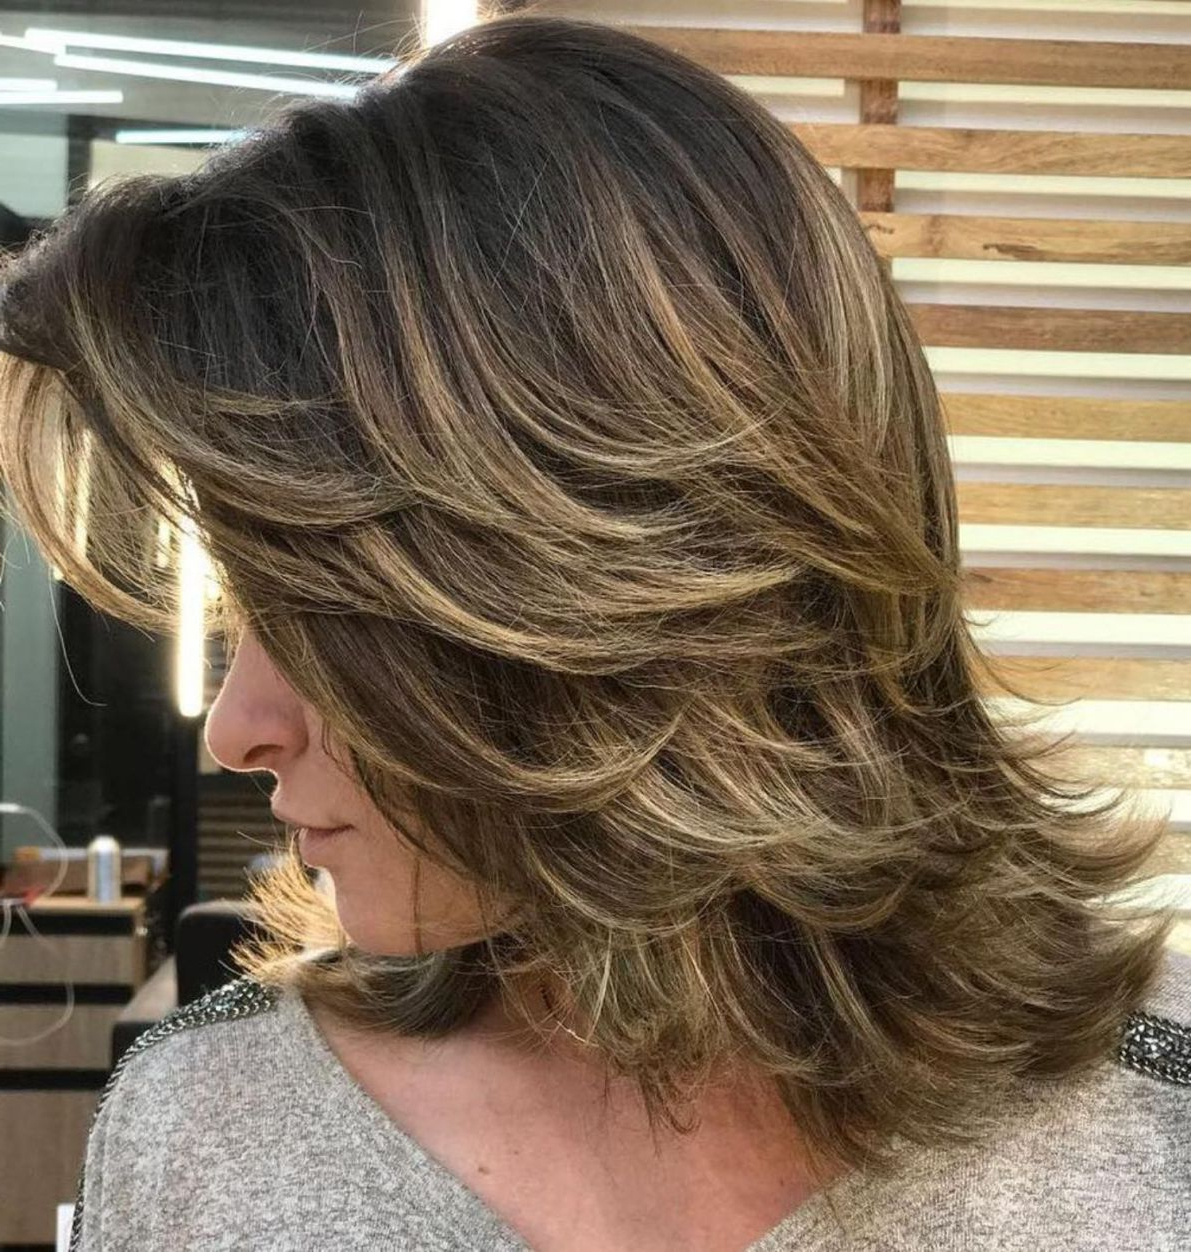 Pin On Cabellos Pertaining To Well Liked Mid Length Feathered Shag Haircuts For Thick Hair (View 7 of 20)